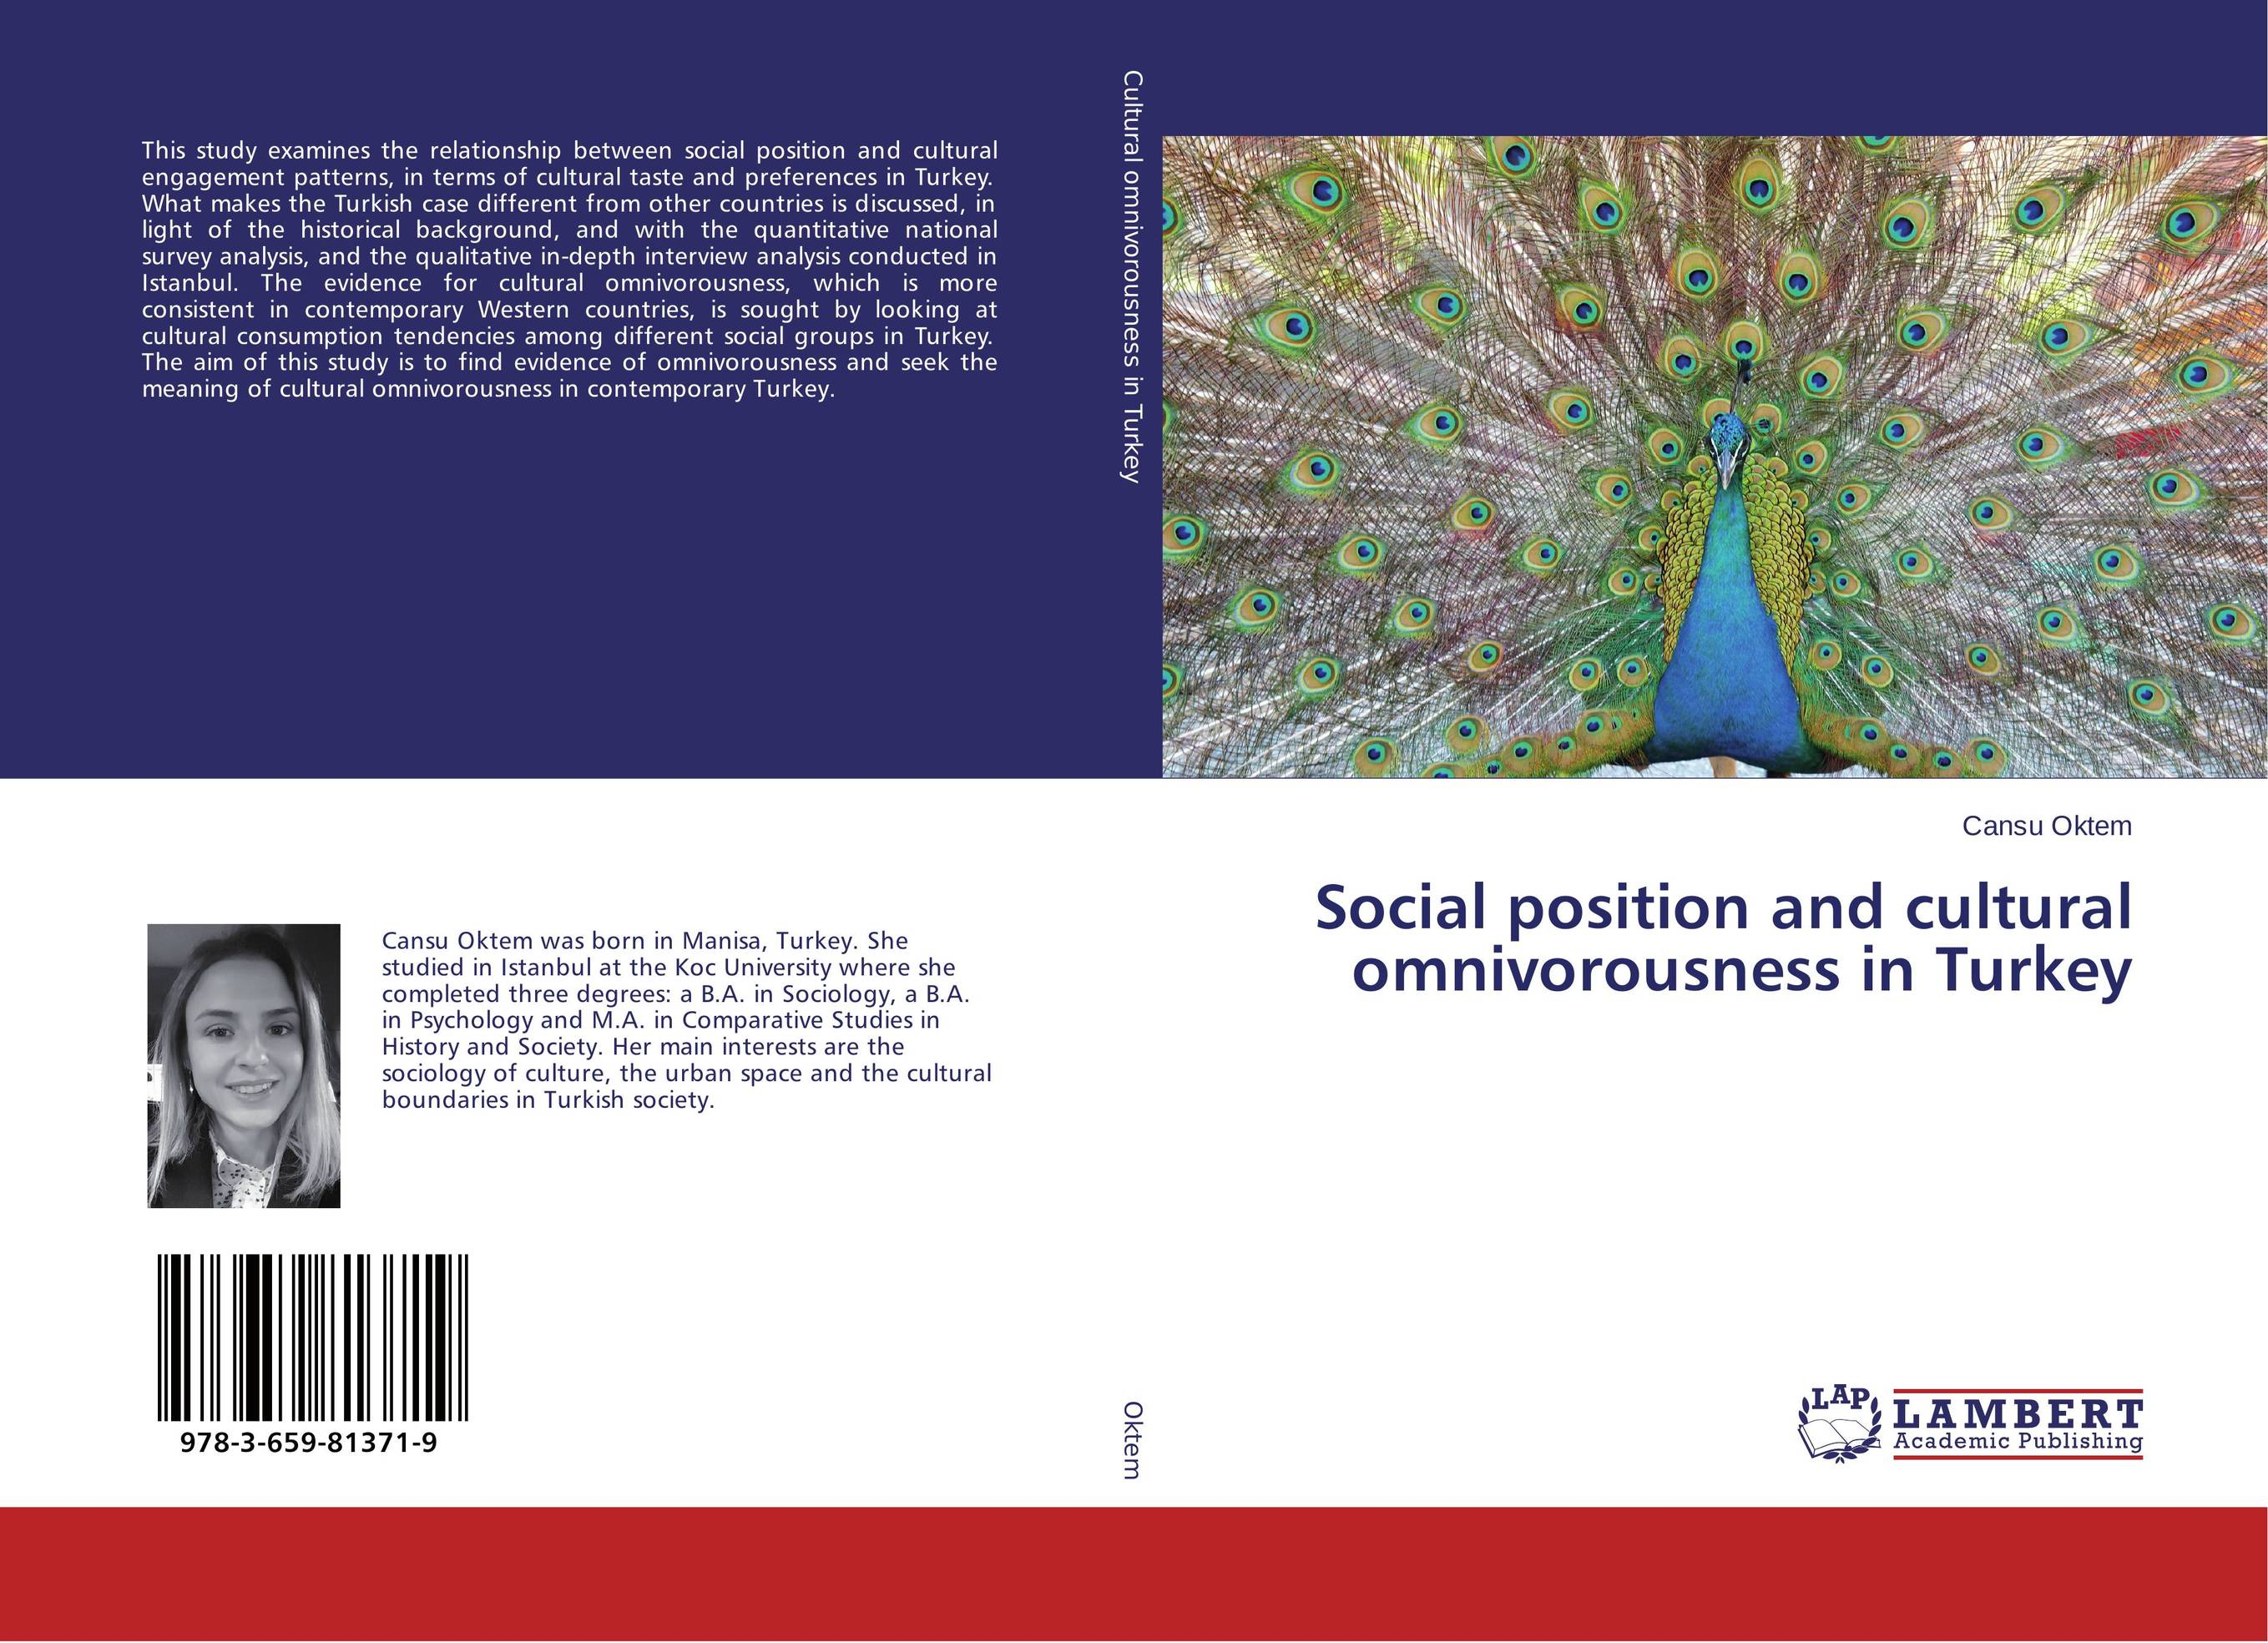 Social position and cultural omnivorousness in Turkey